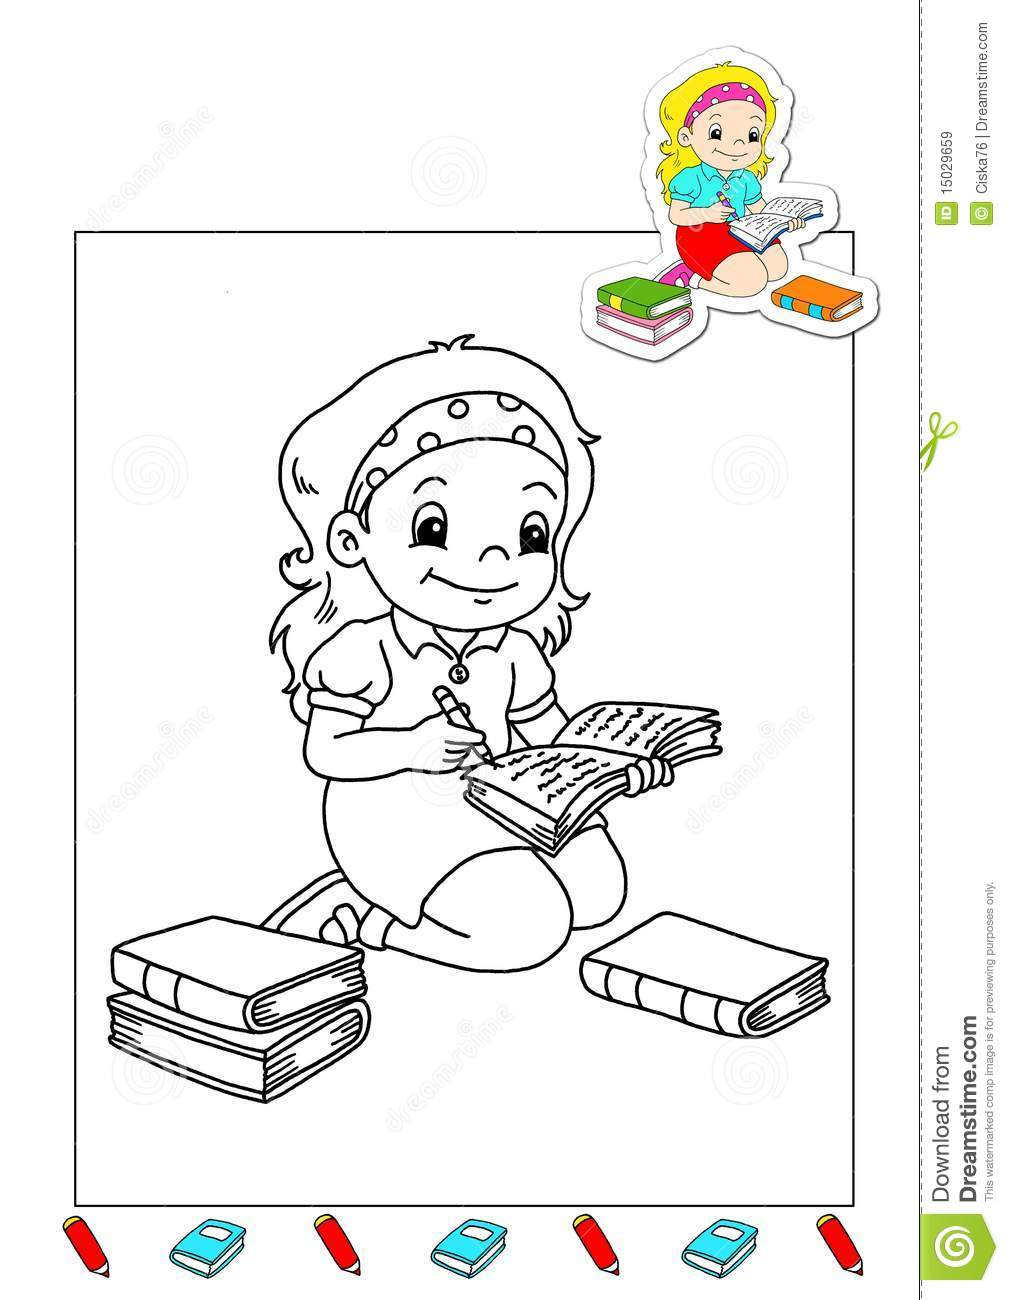 coloring book of the works 28 writer royalty free stock images